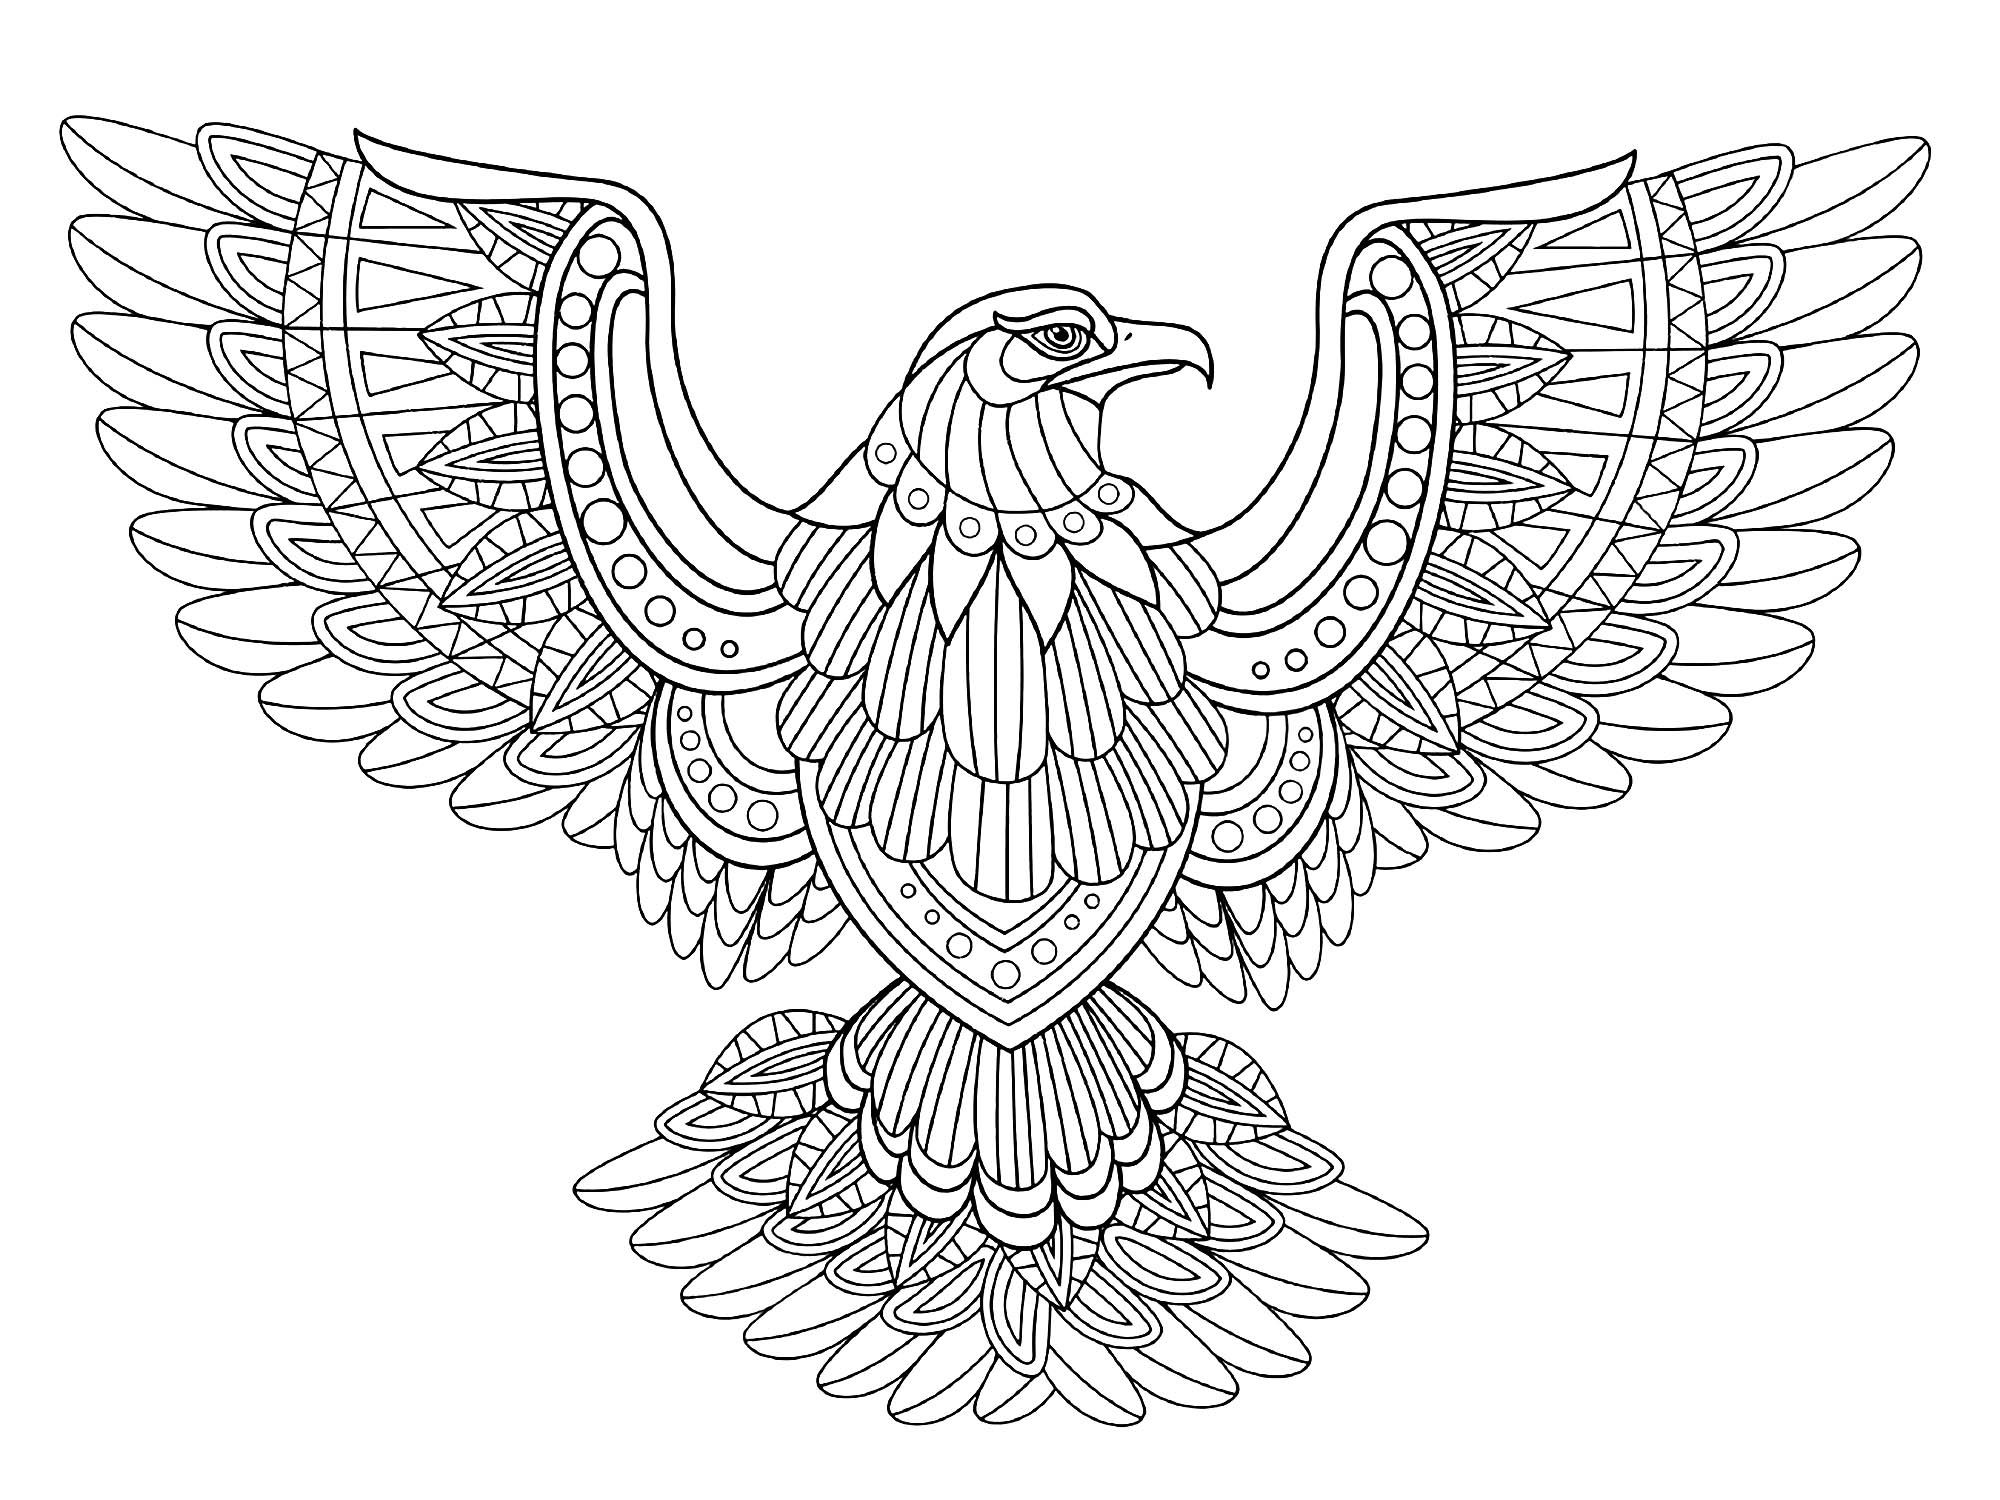 Eagle Coloring Page Animals Town Free Eagle Color Sheet Bird Coloring Pages Detailed Coloring Pages Animal Coloring Pages